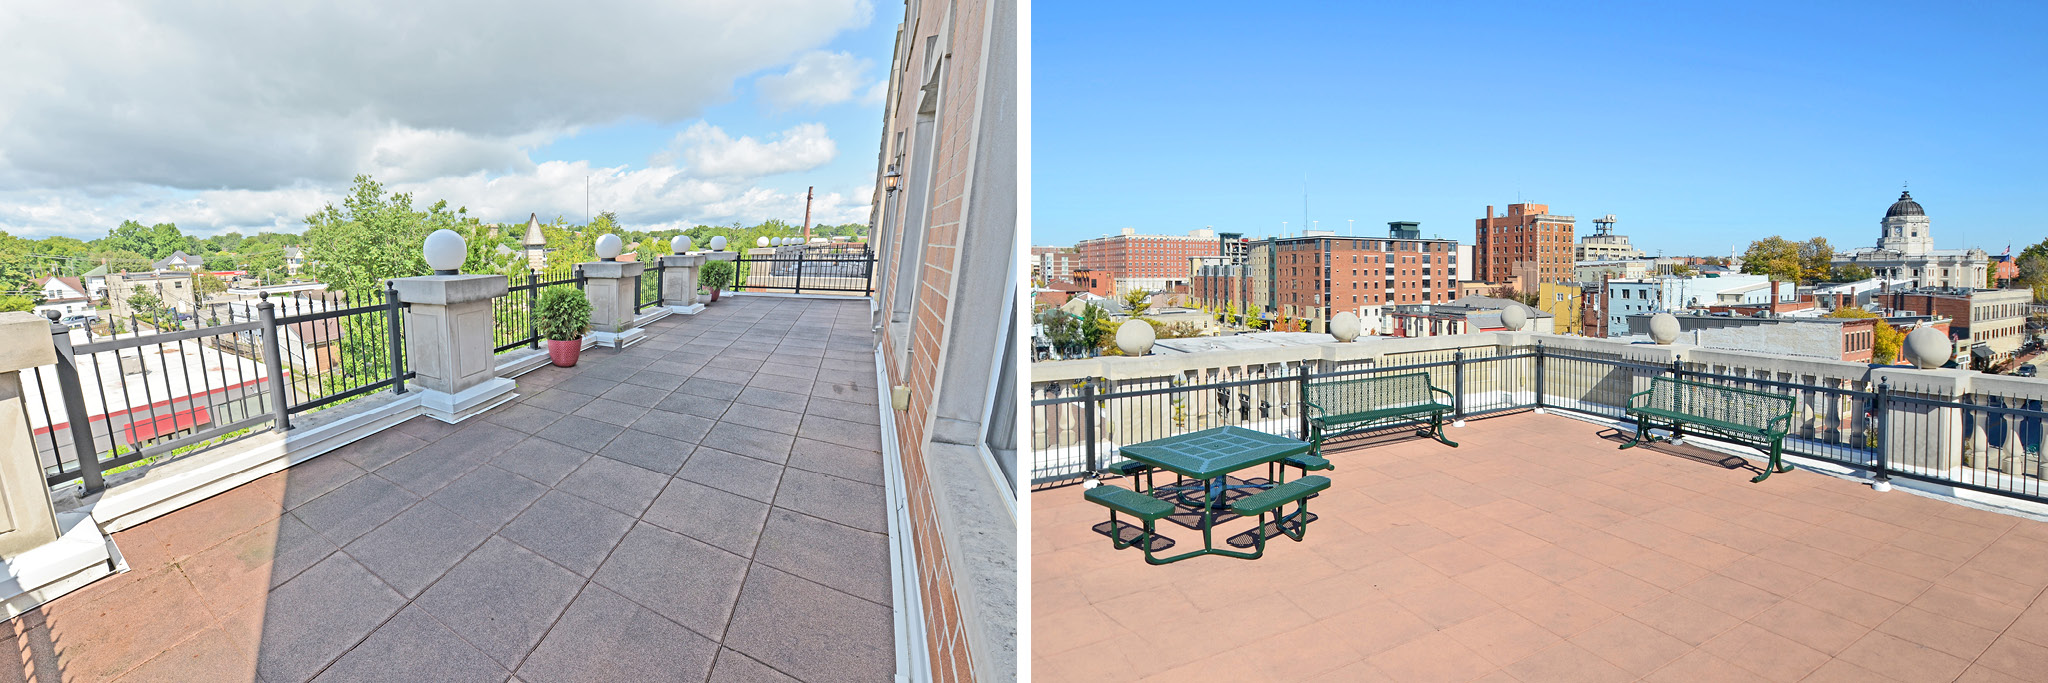 Take in the cool, crisp air by stepping onto one of the patios or balconies.